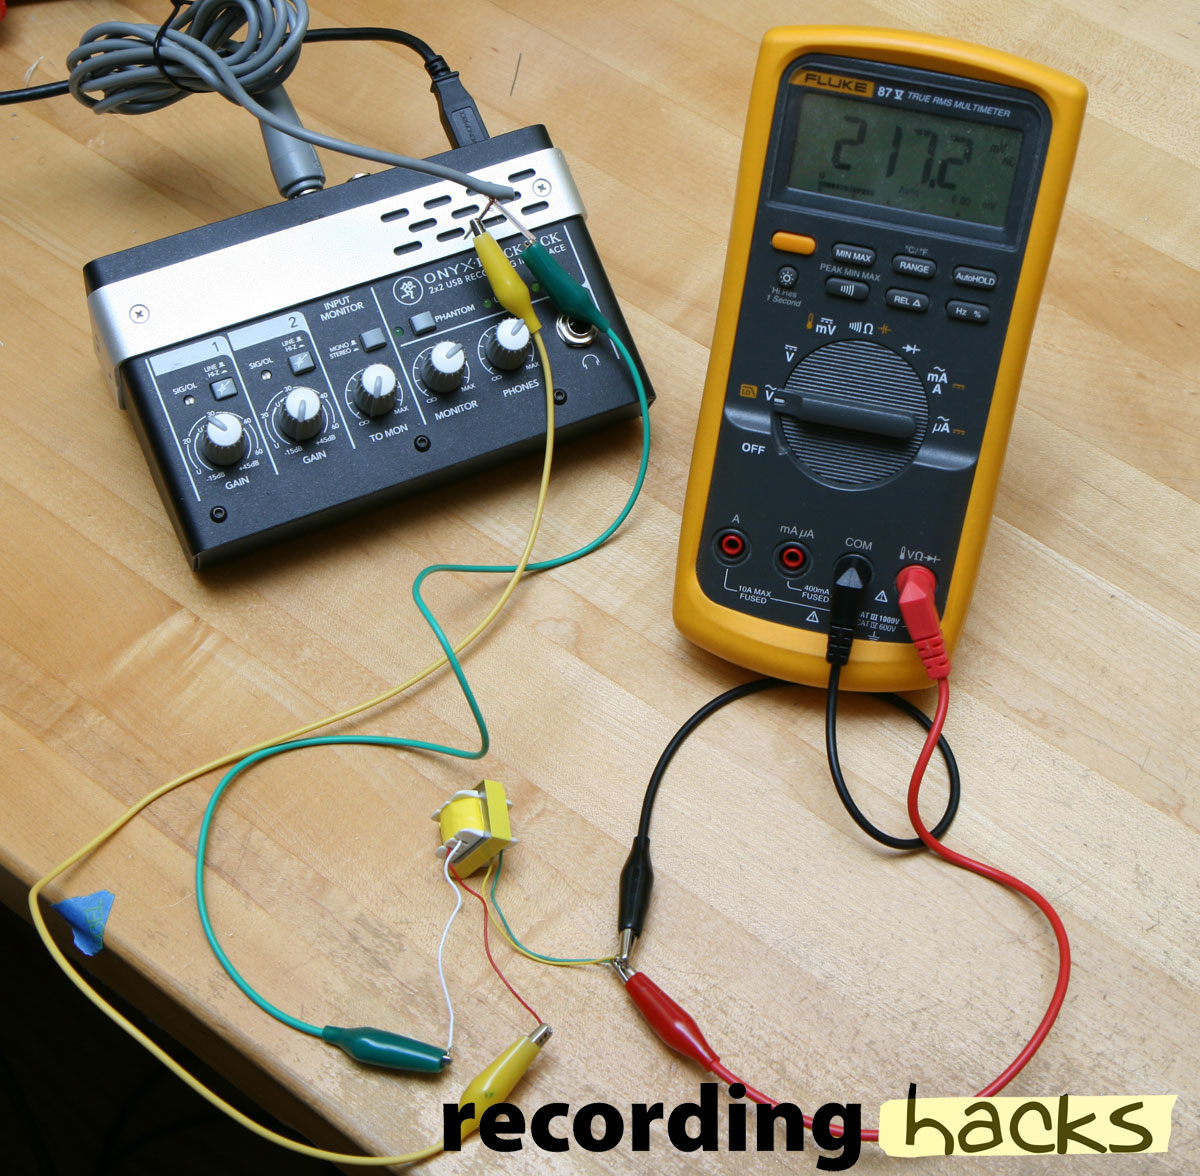 How To Measure Transformer Ratio Recording Hacks Multi Tone Generator Sound Projects It Was Taken From An M Audio Luna Or Sterling St55 Groove Tubes Gt55 Id Lost Track Of Which But They All Look